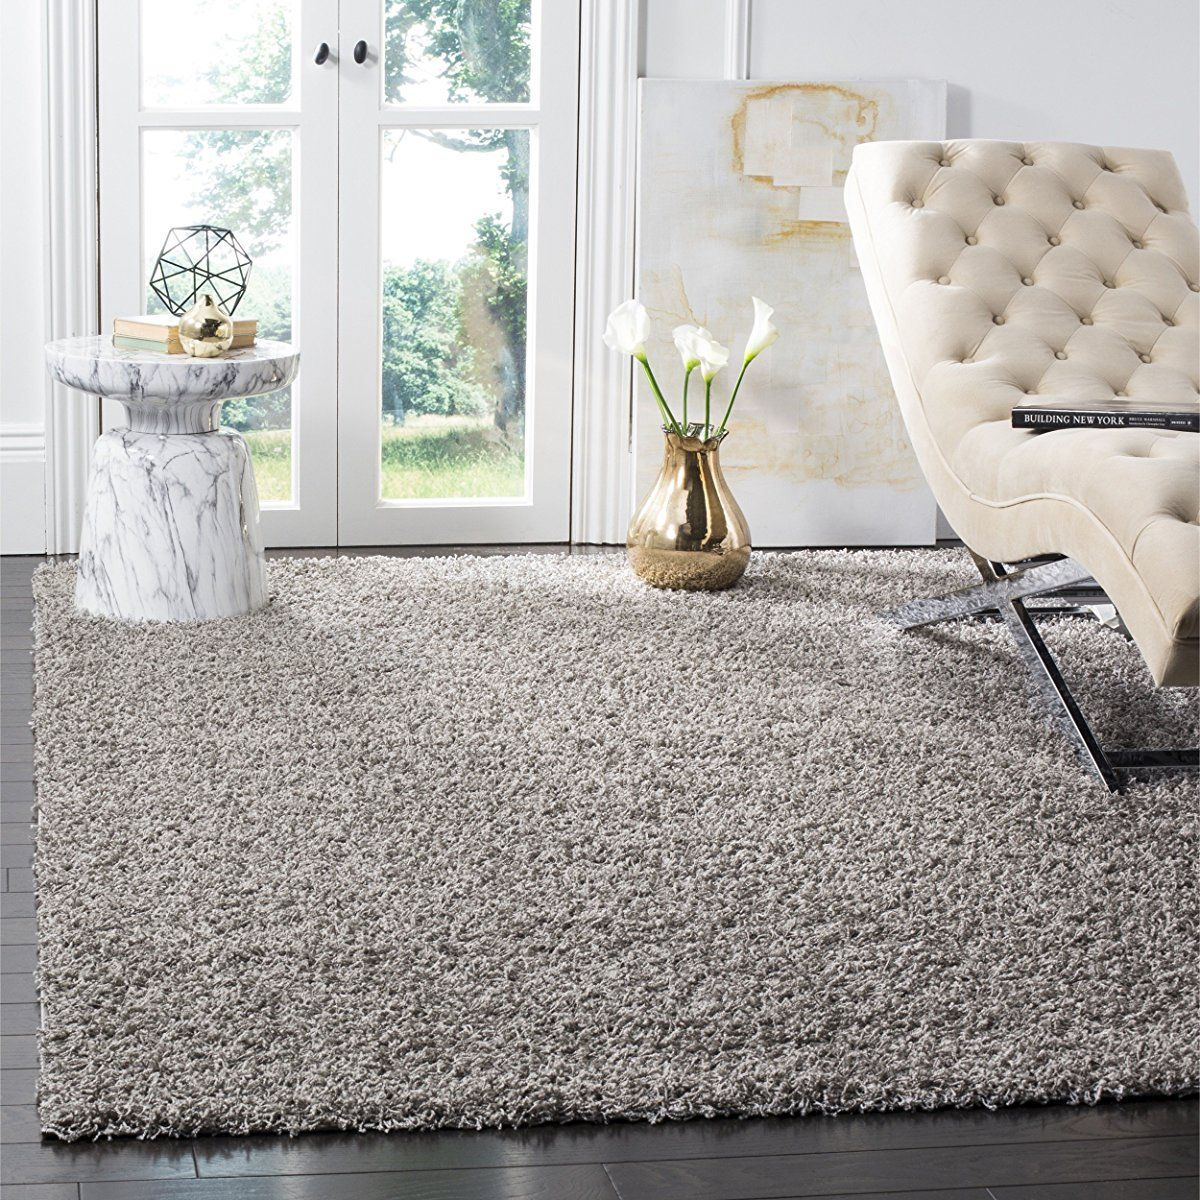 Safavieh athens shag collection sgaf light grey area rug x